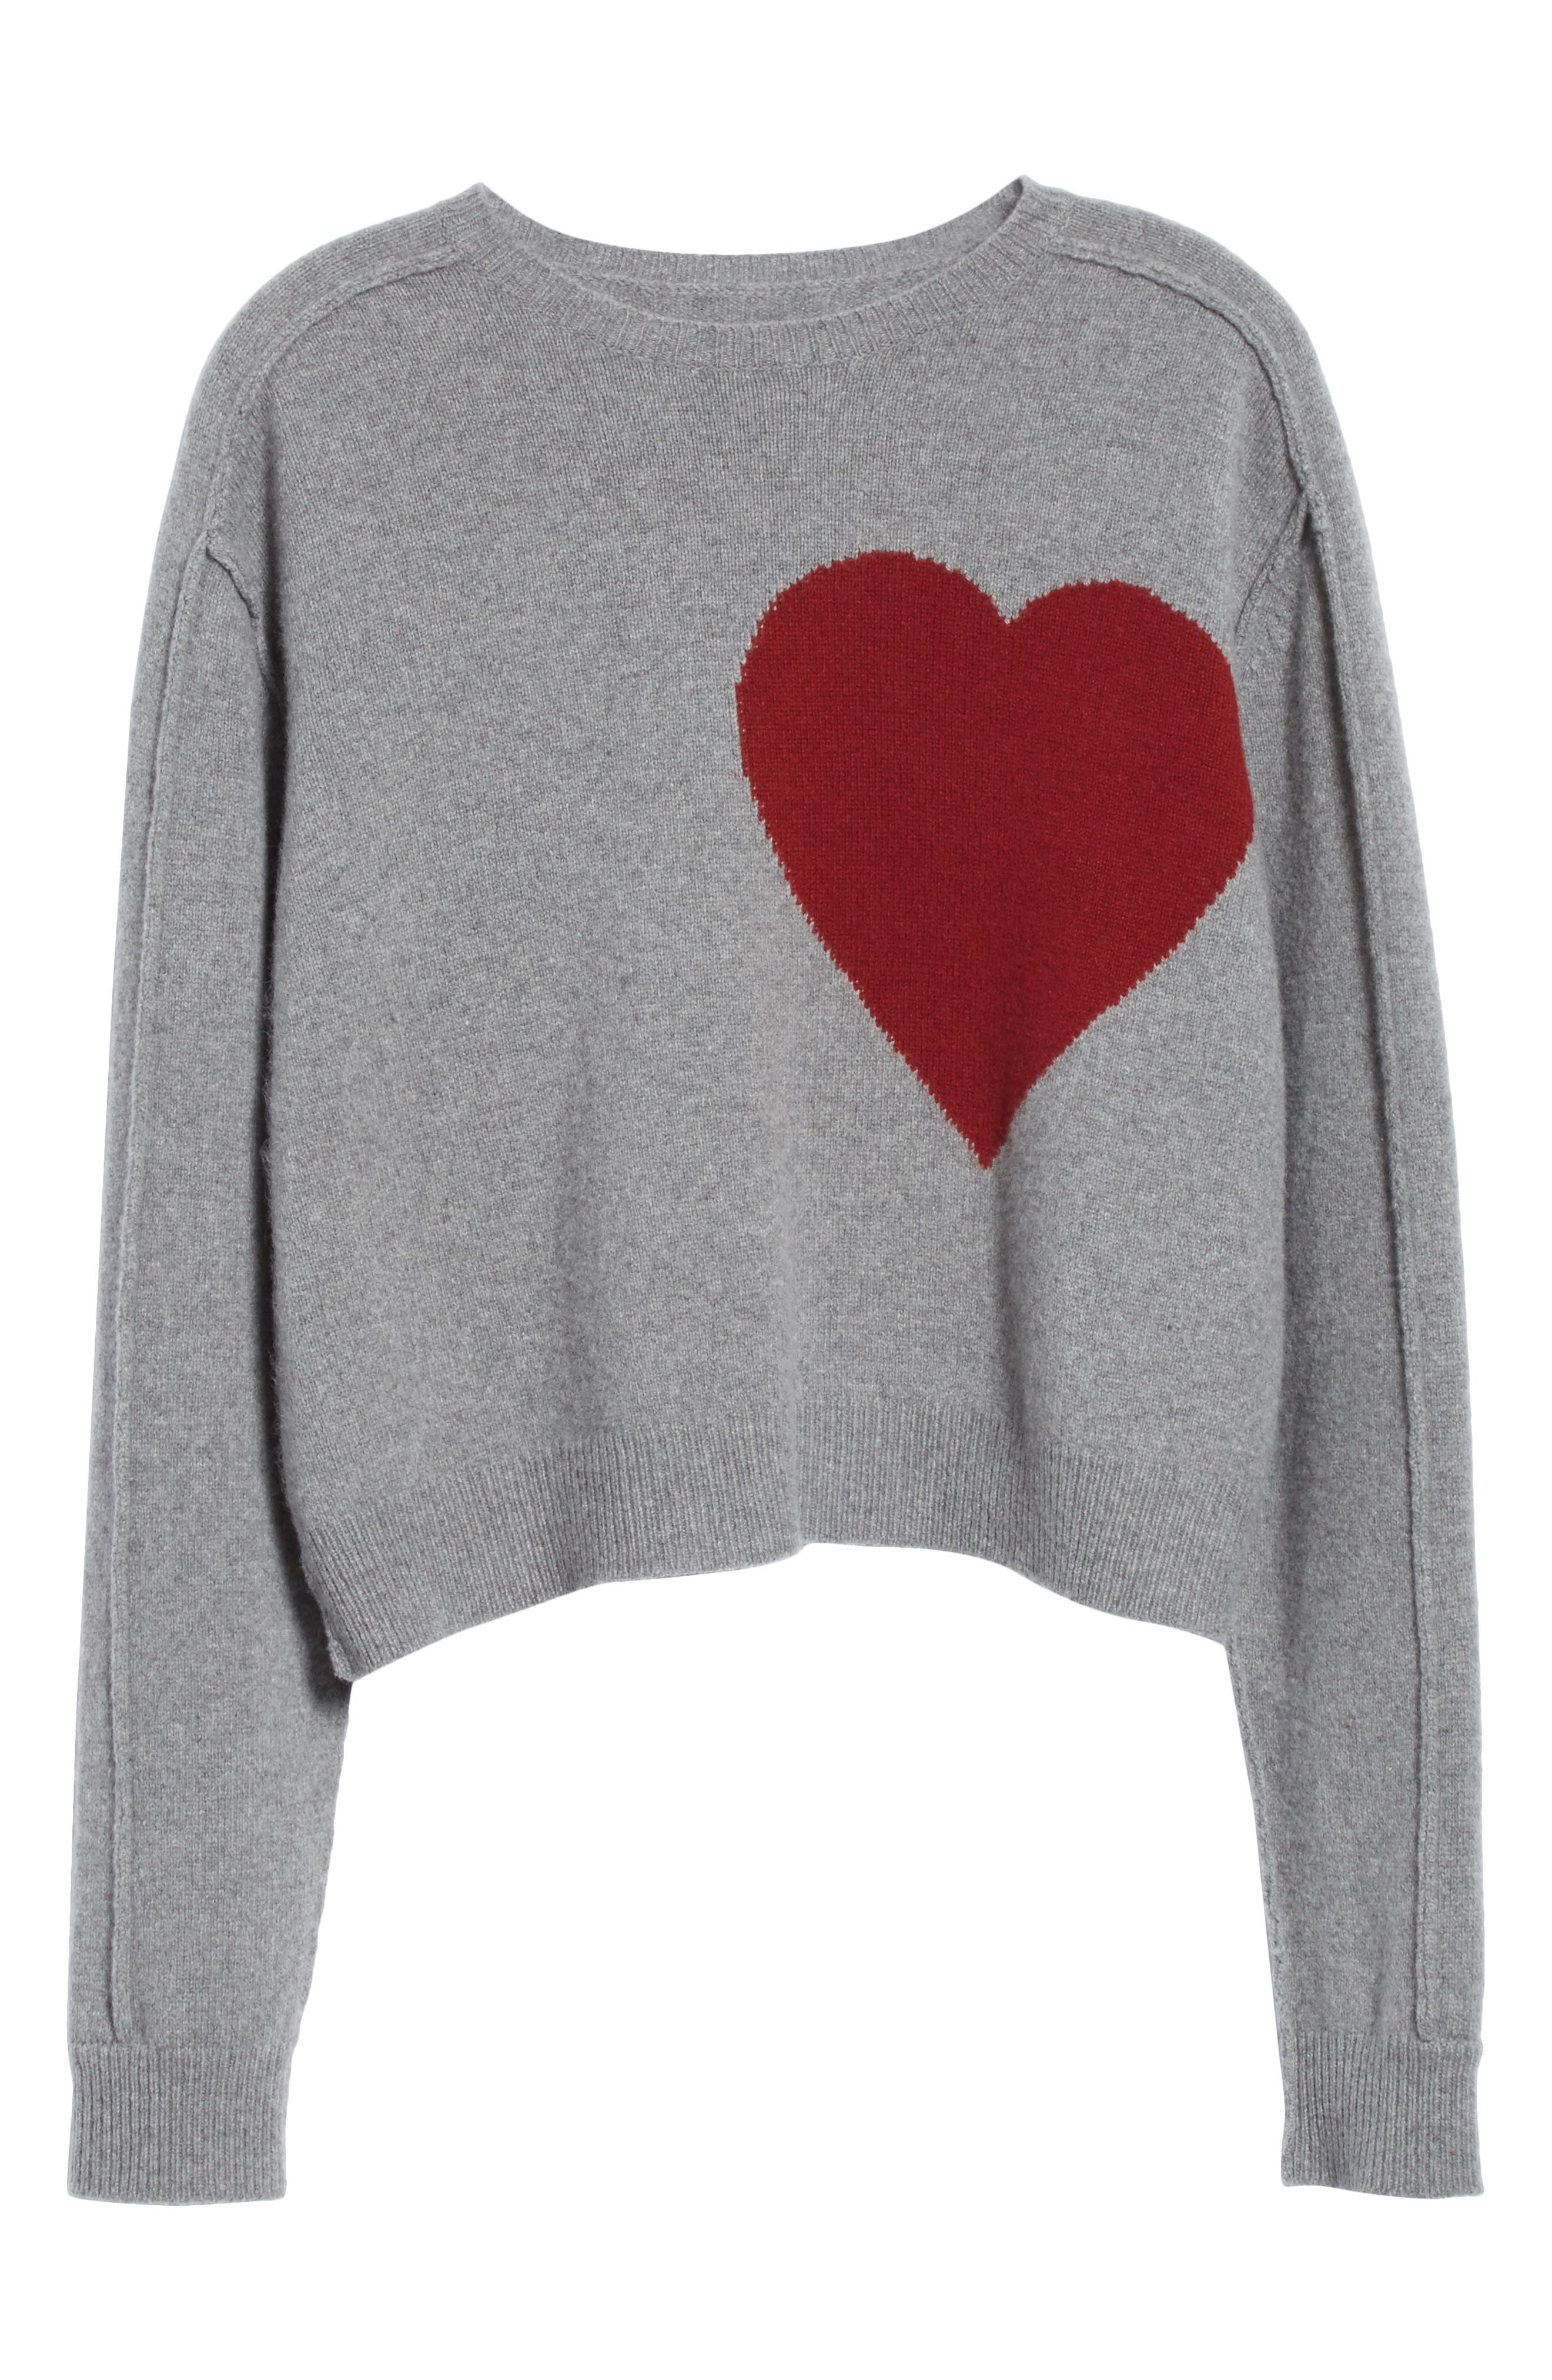 Heart Wool & Cashmere Sweater,                             Alternate thumbnail 7, color,                             Grey